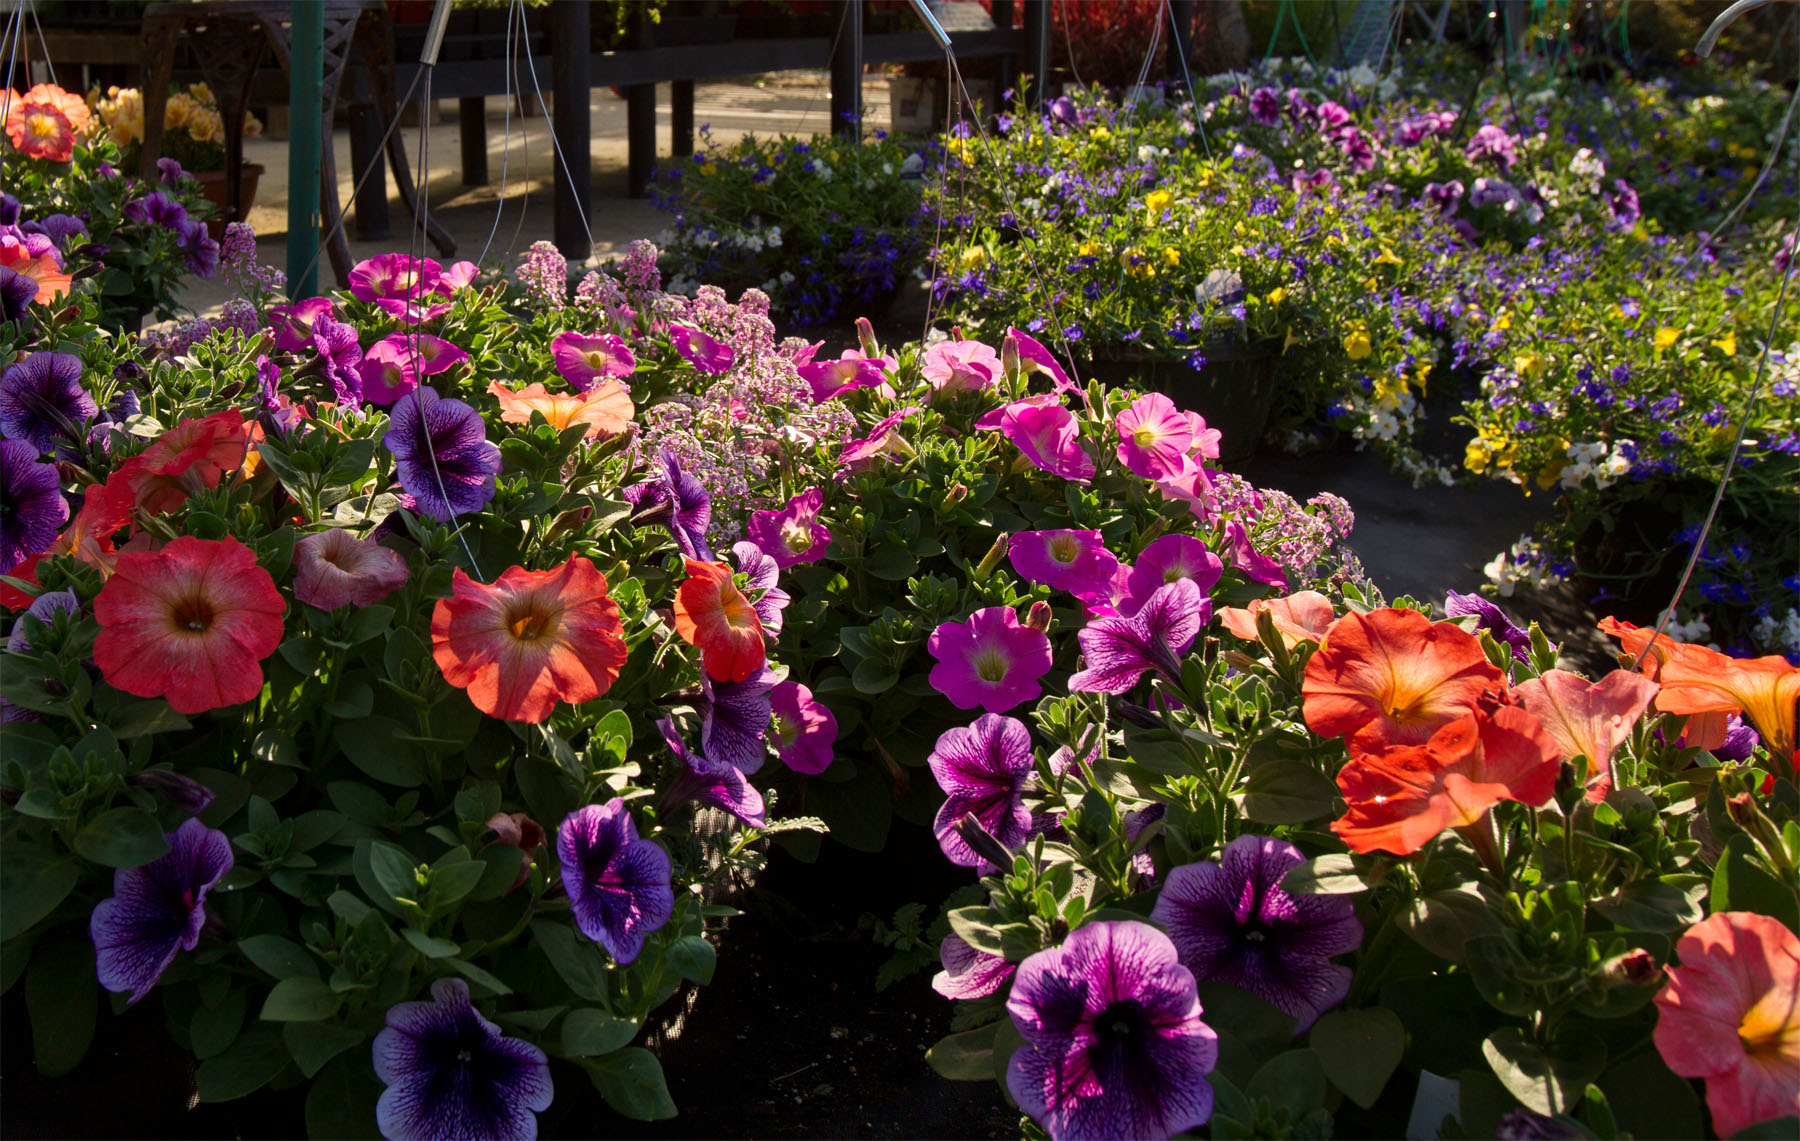 Petunias at Homestead Garden Center - Terri Aigner photo